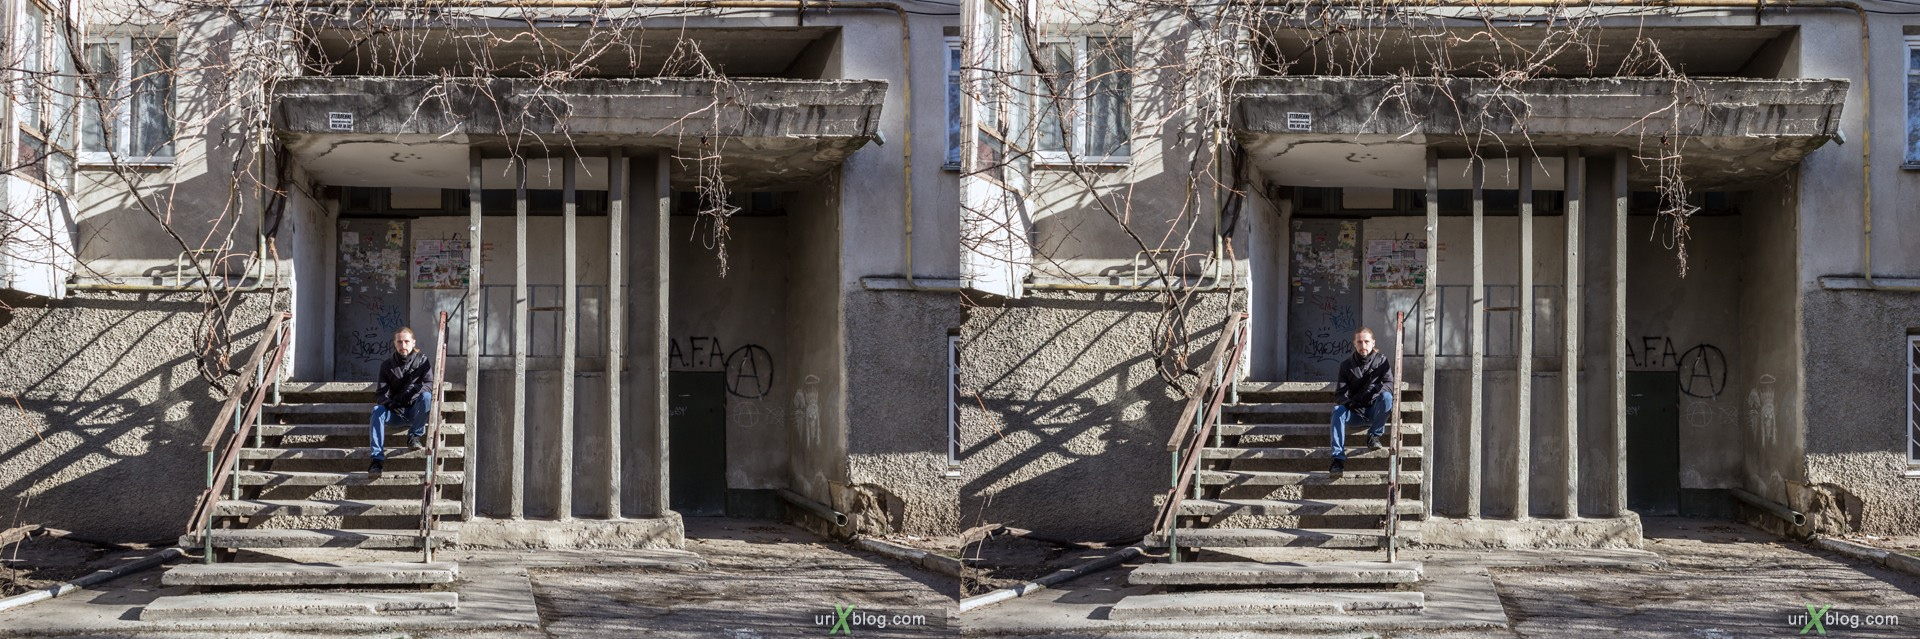 2012, Simferopol, Crimea, Russia, Ukraine, winter, 3D, stereo pair, cross-eyed, crossview, cross view stereo pair, stereoscopic